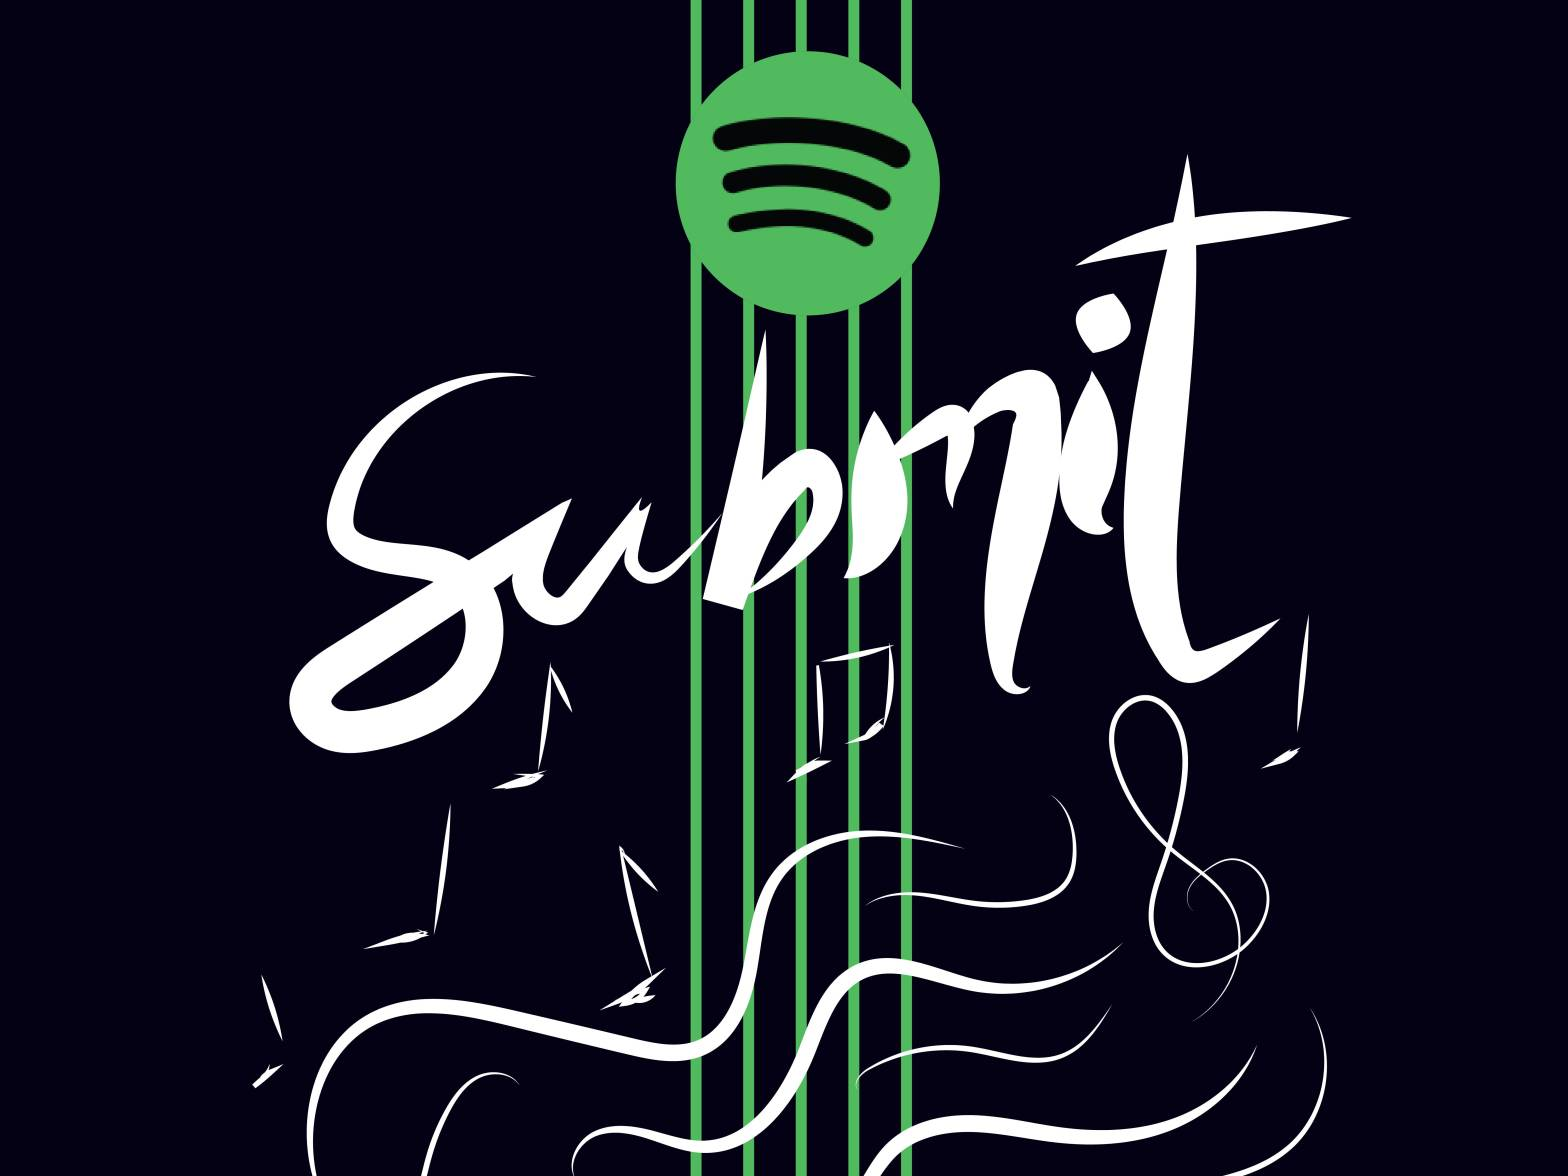 submit songs to spotify